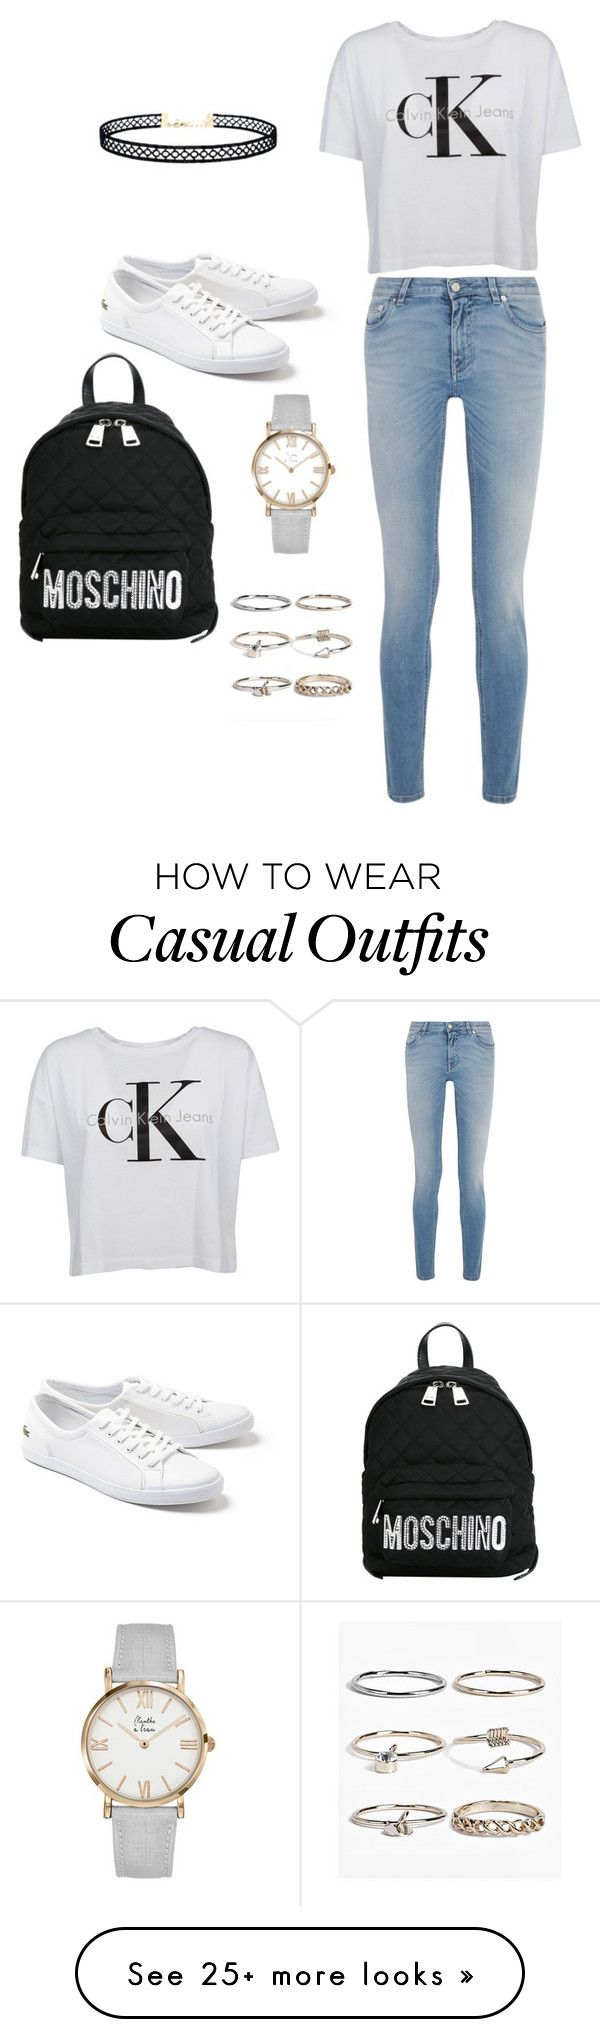 """Casual clothing :)"" by hewlett74 on Polyvore featuring LULUS, Givenchy, Lacoste, Moschino and Boohoo"